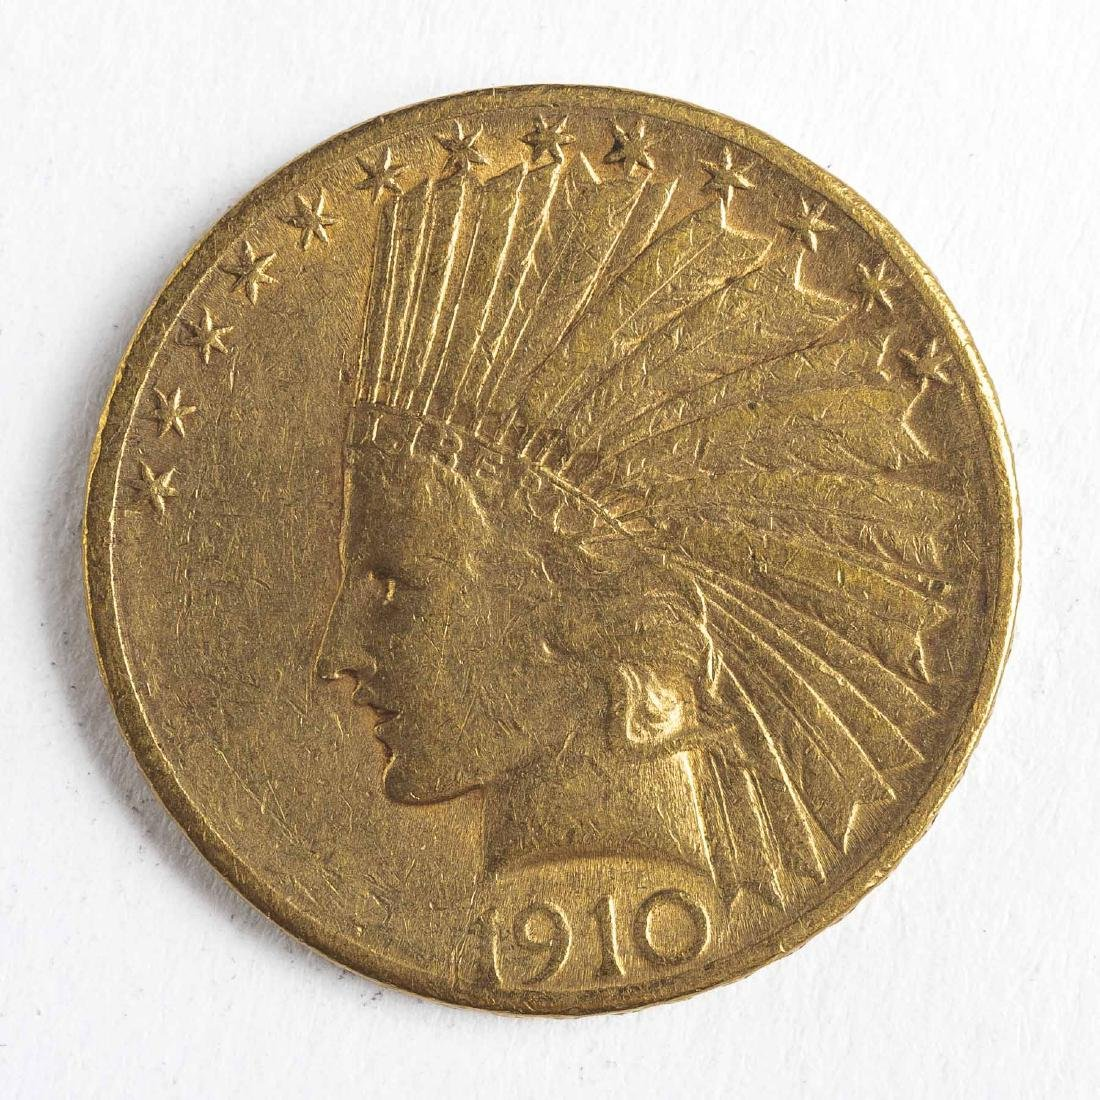 1910-S $10 Indian Head Gold Coin